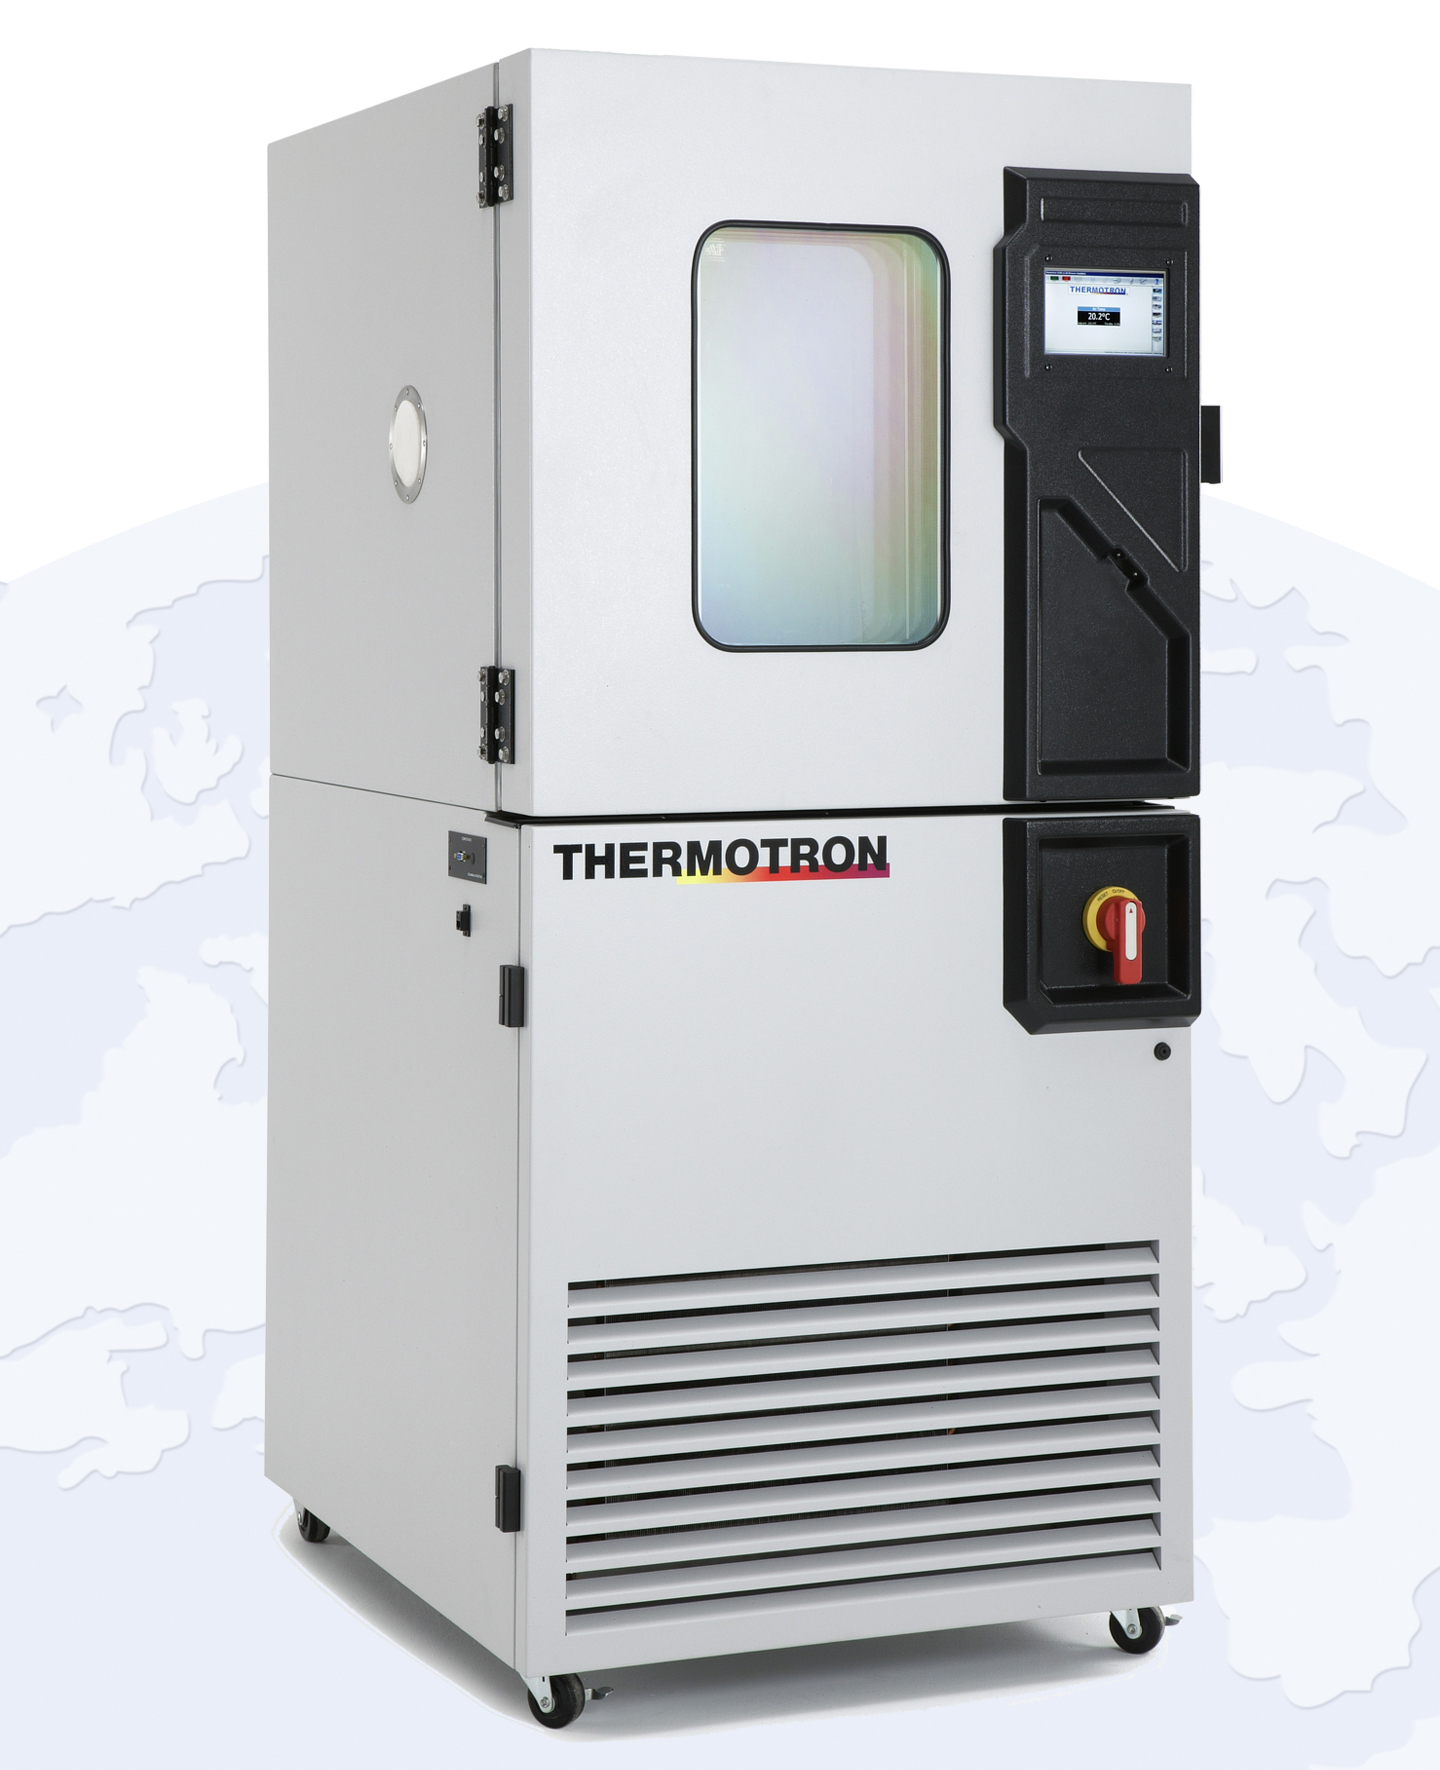 Thermatron S-Series environmental testing chamber